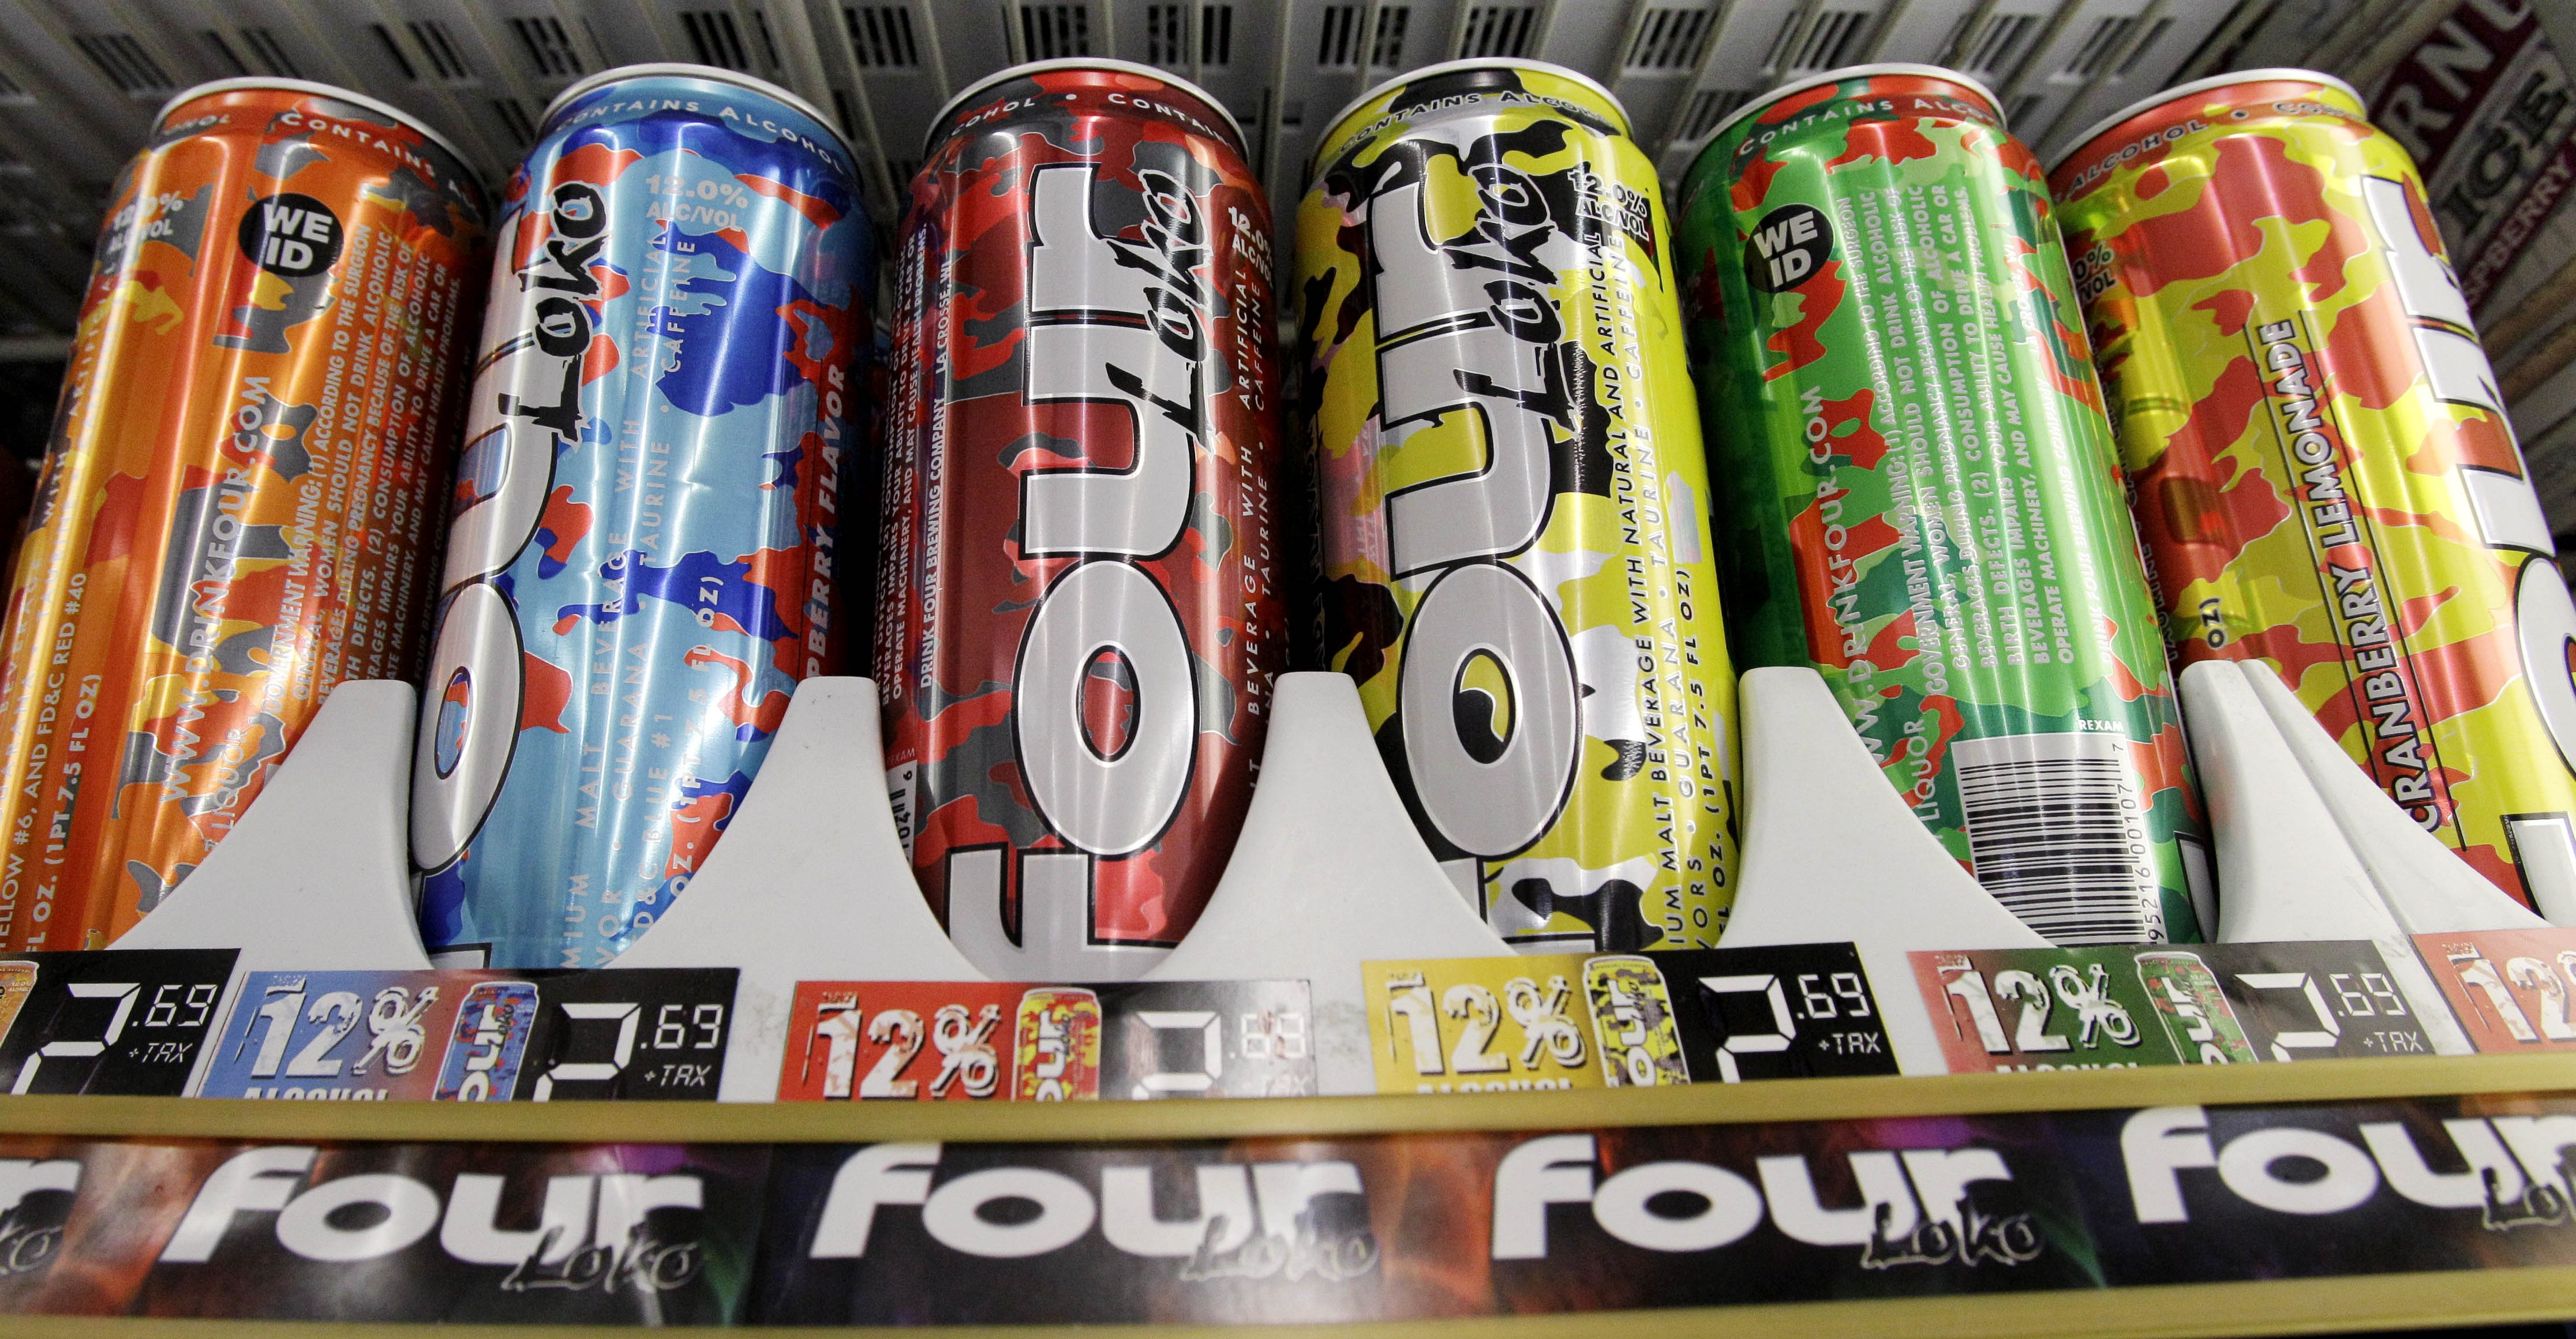 In this Nov. 10, 2010 file photo, Four Loko alcoholic energy drinks are seen in the cooler of a convenience store, in Seattle. The Food and Drug Administration is expected to announce a virtual ban of alcoholic energy drinks Wednesday, Nov. 17, 2010, even as a leading manufacturer is pulling its products off the market.